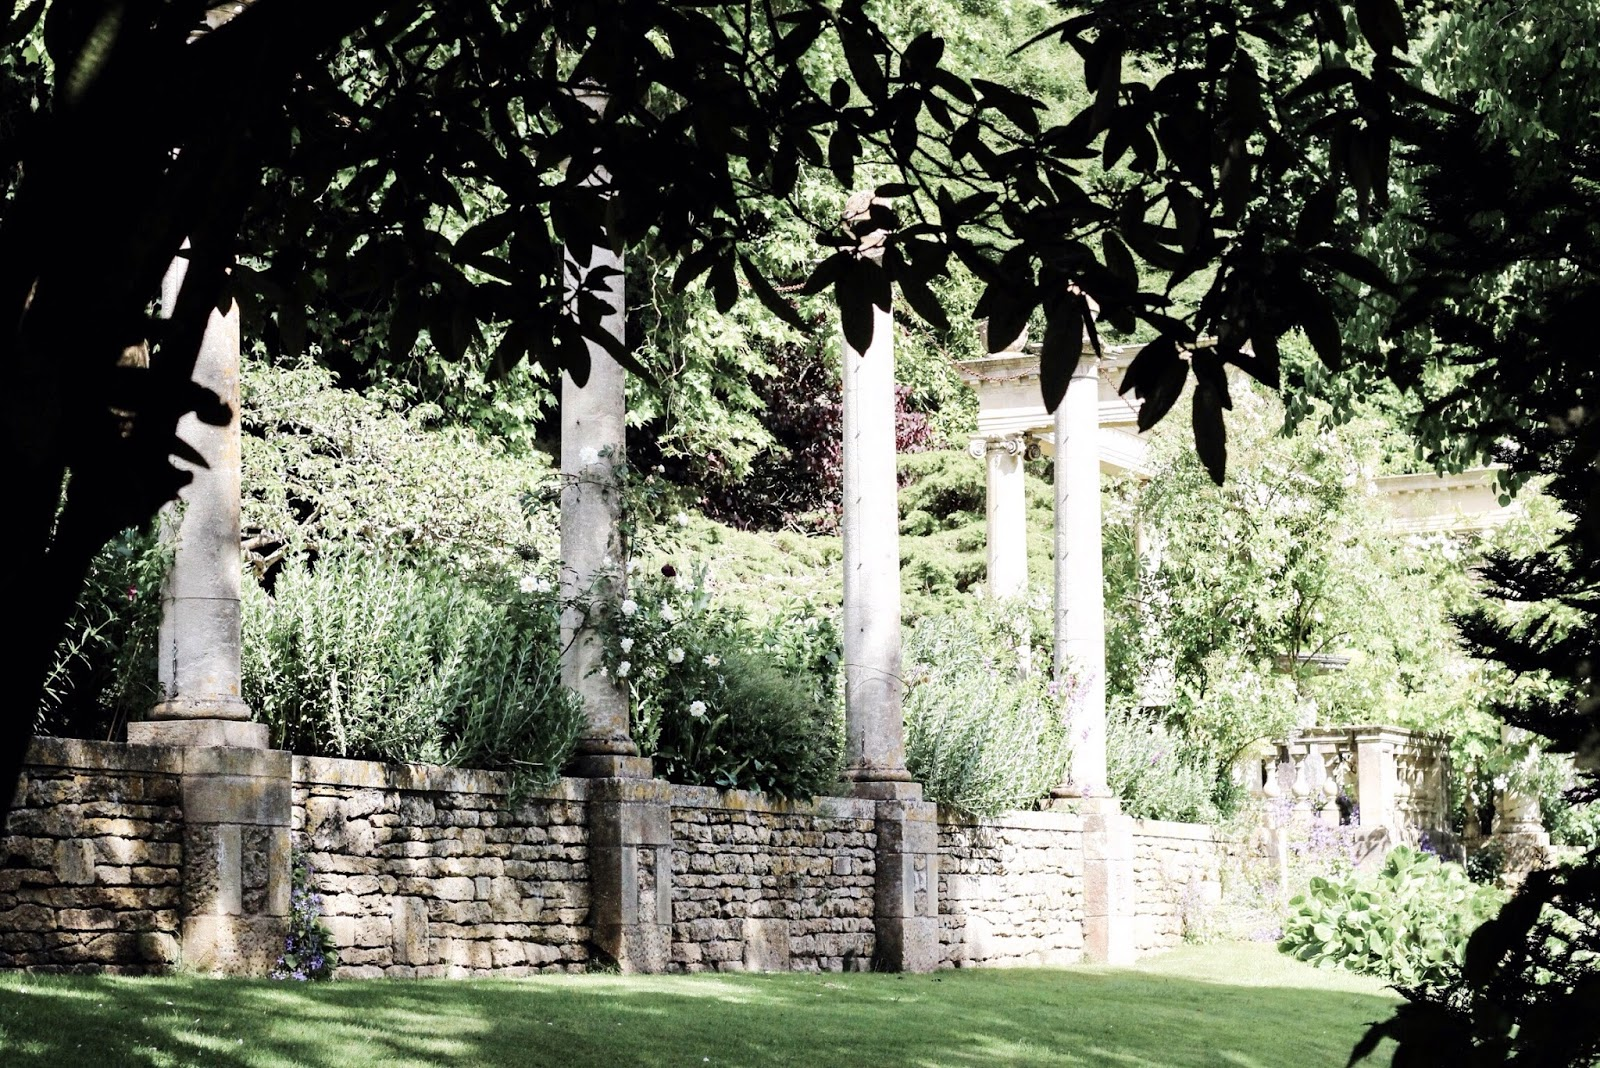 Beautiful landscaped UK gardens with pillars